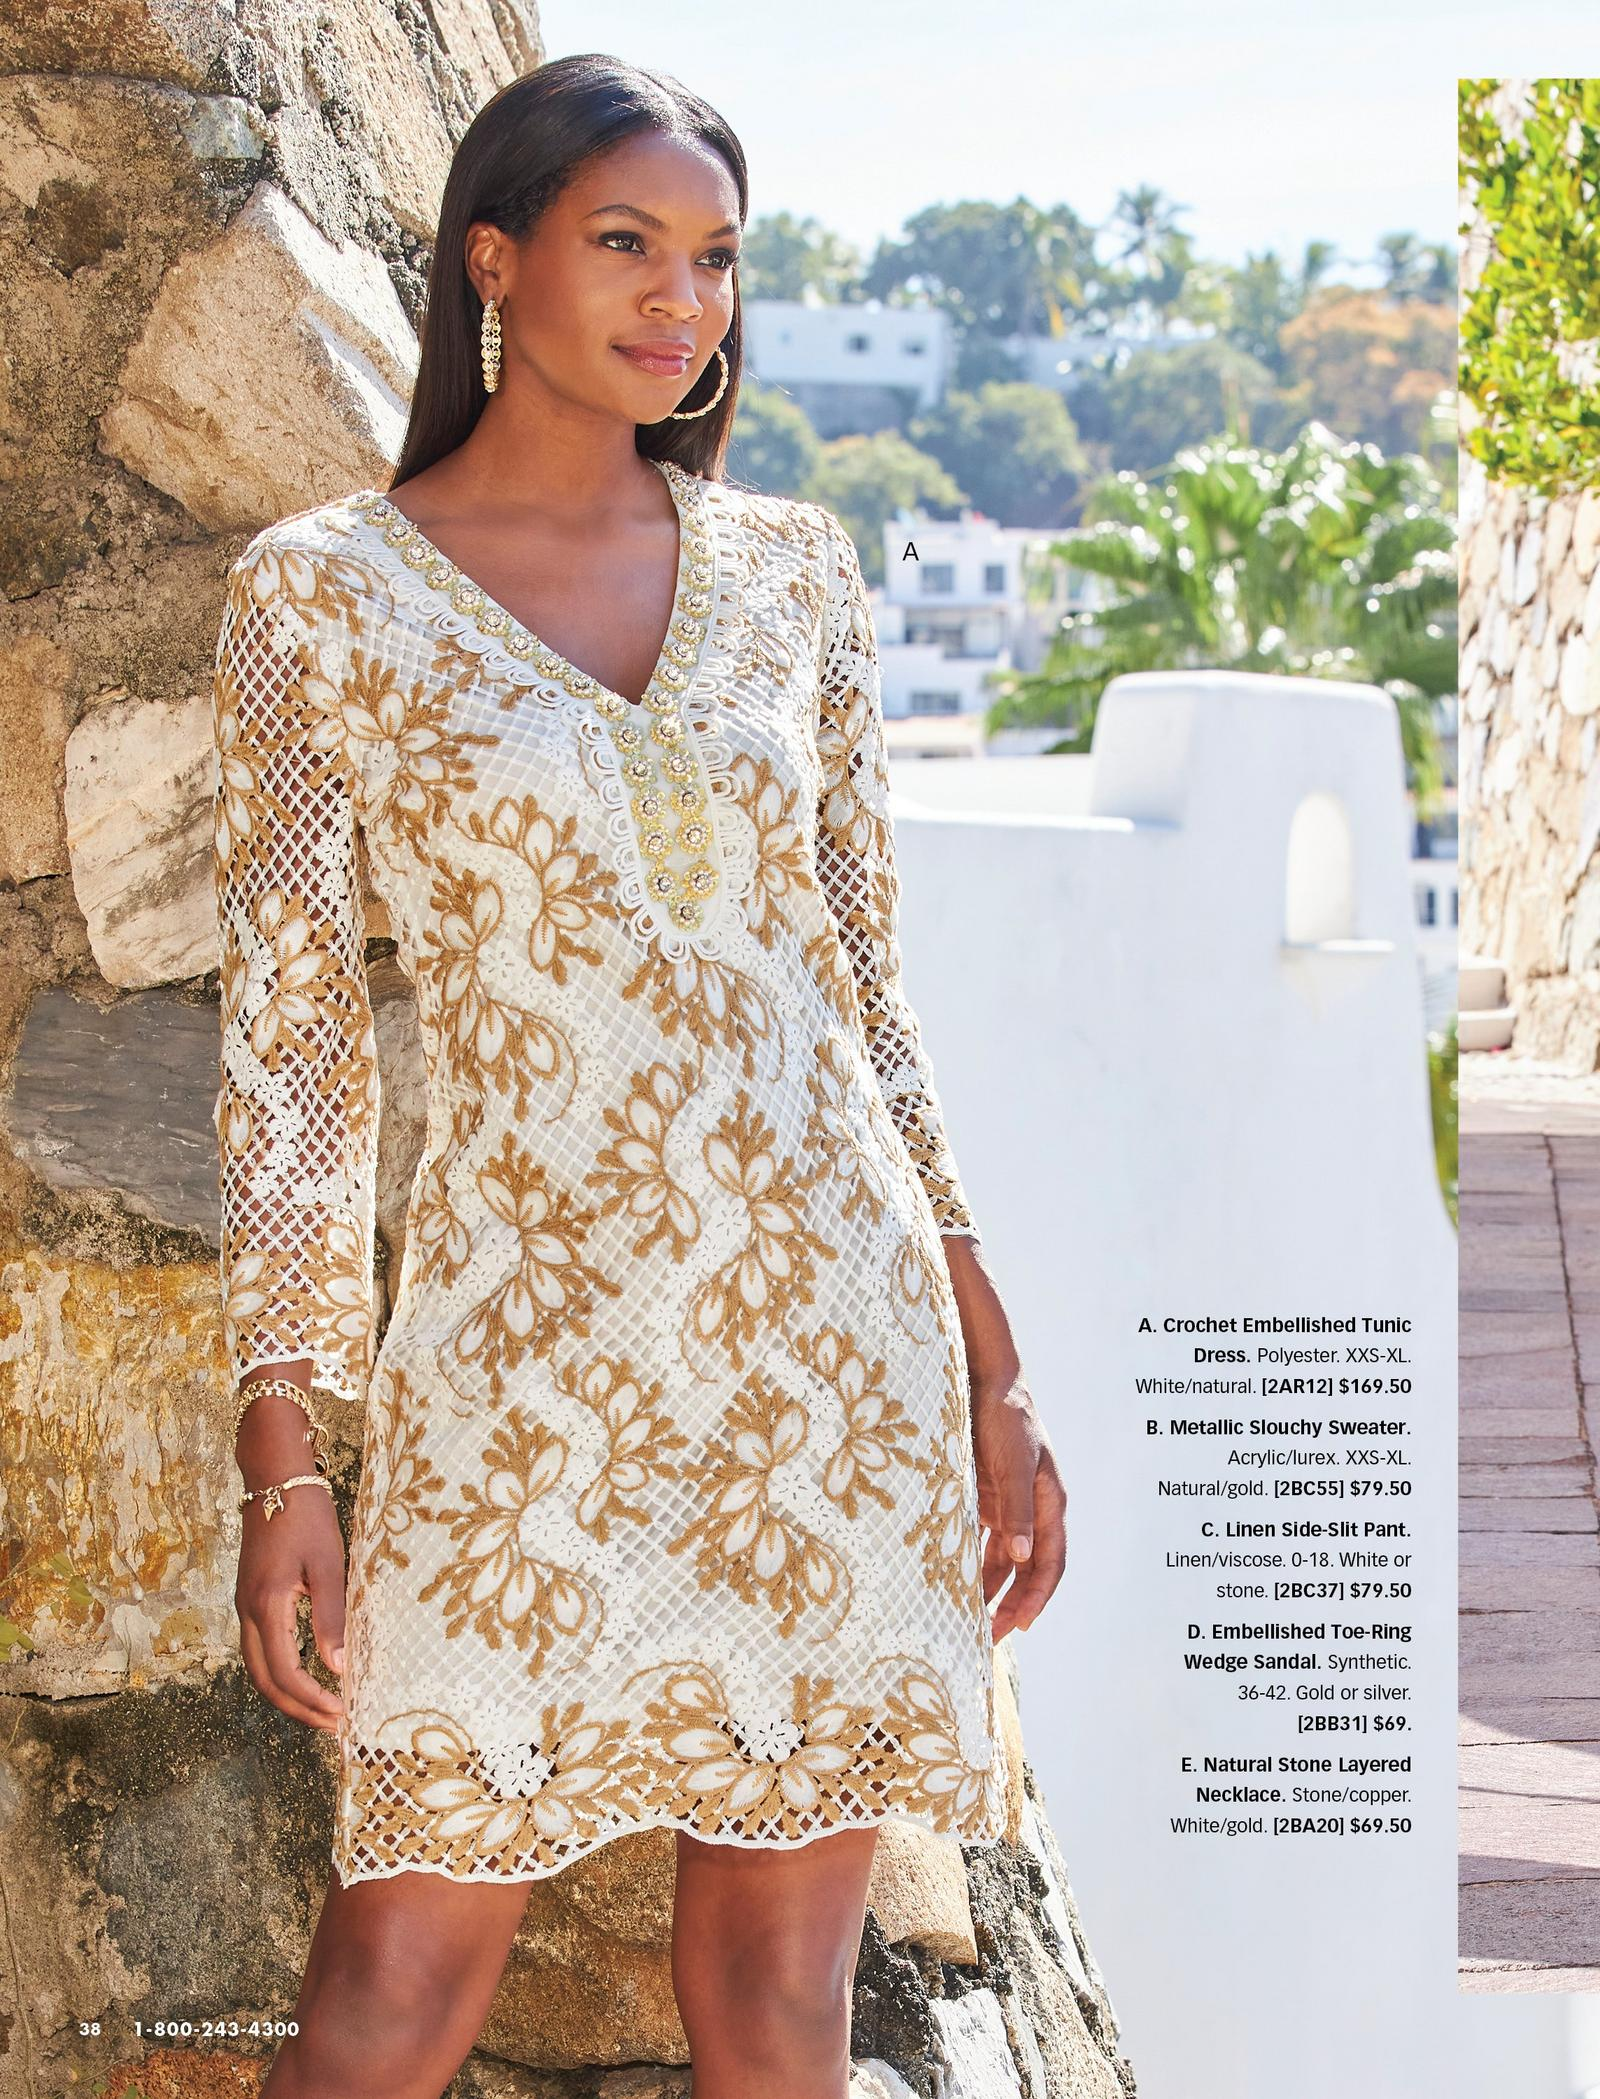 model wearing a white and gold crochet long-sleeve embellished sheath dress and gold hoop earrings.